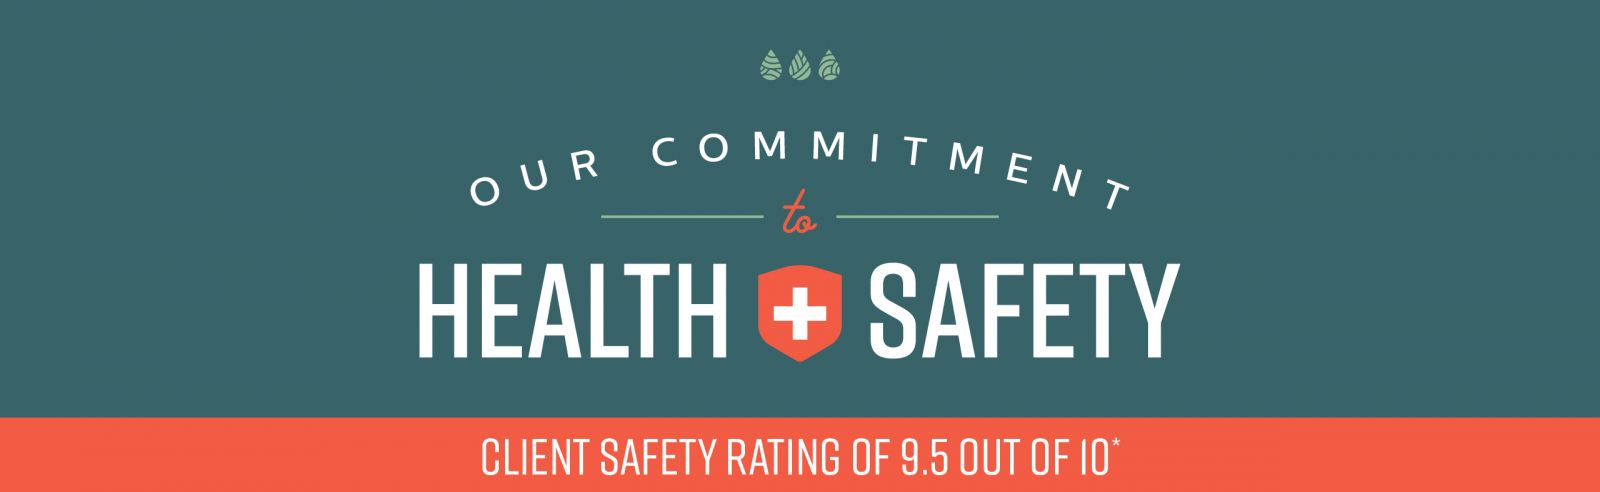 client safety rating 9.5 out of 10